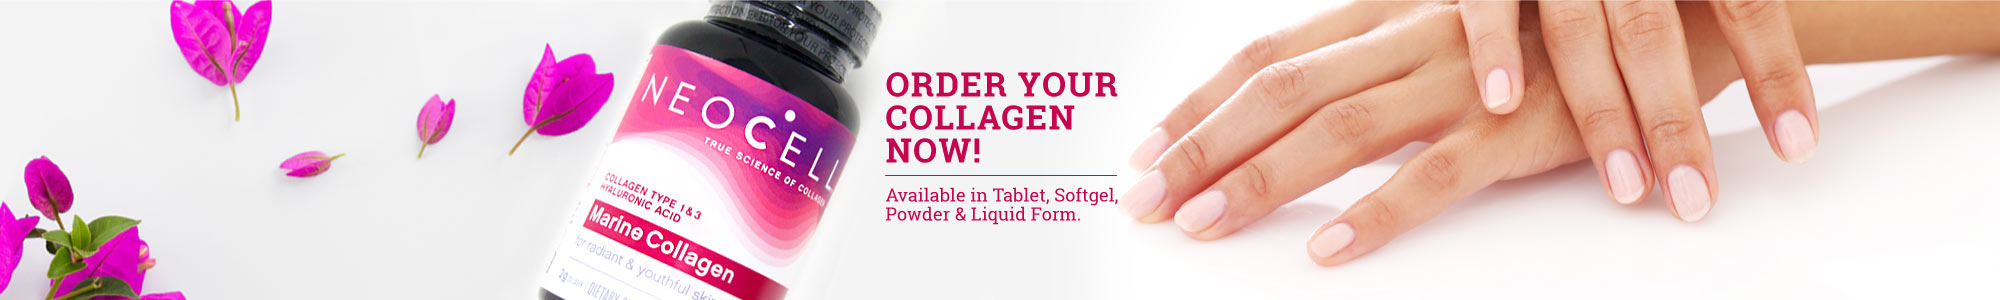 ORDER YOUR COLLAGEN NOW! Available in Tablet, Softgel, Powder & Liquid Form.